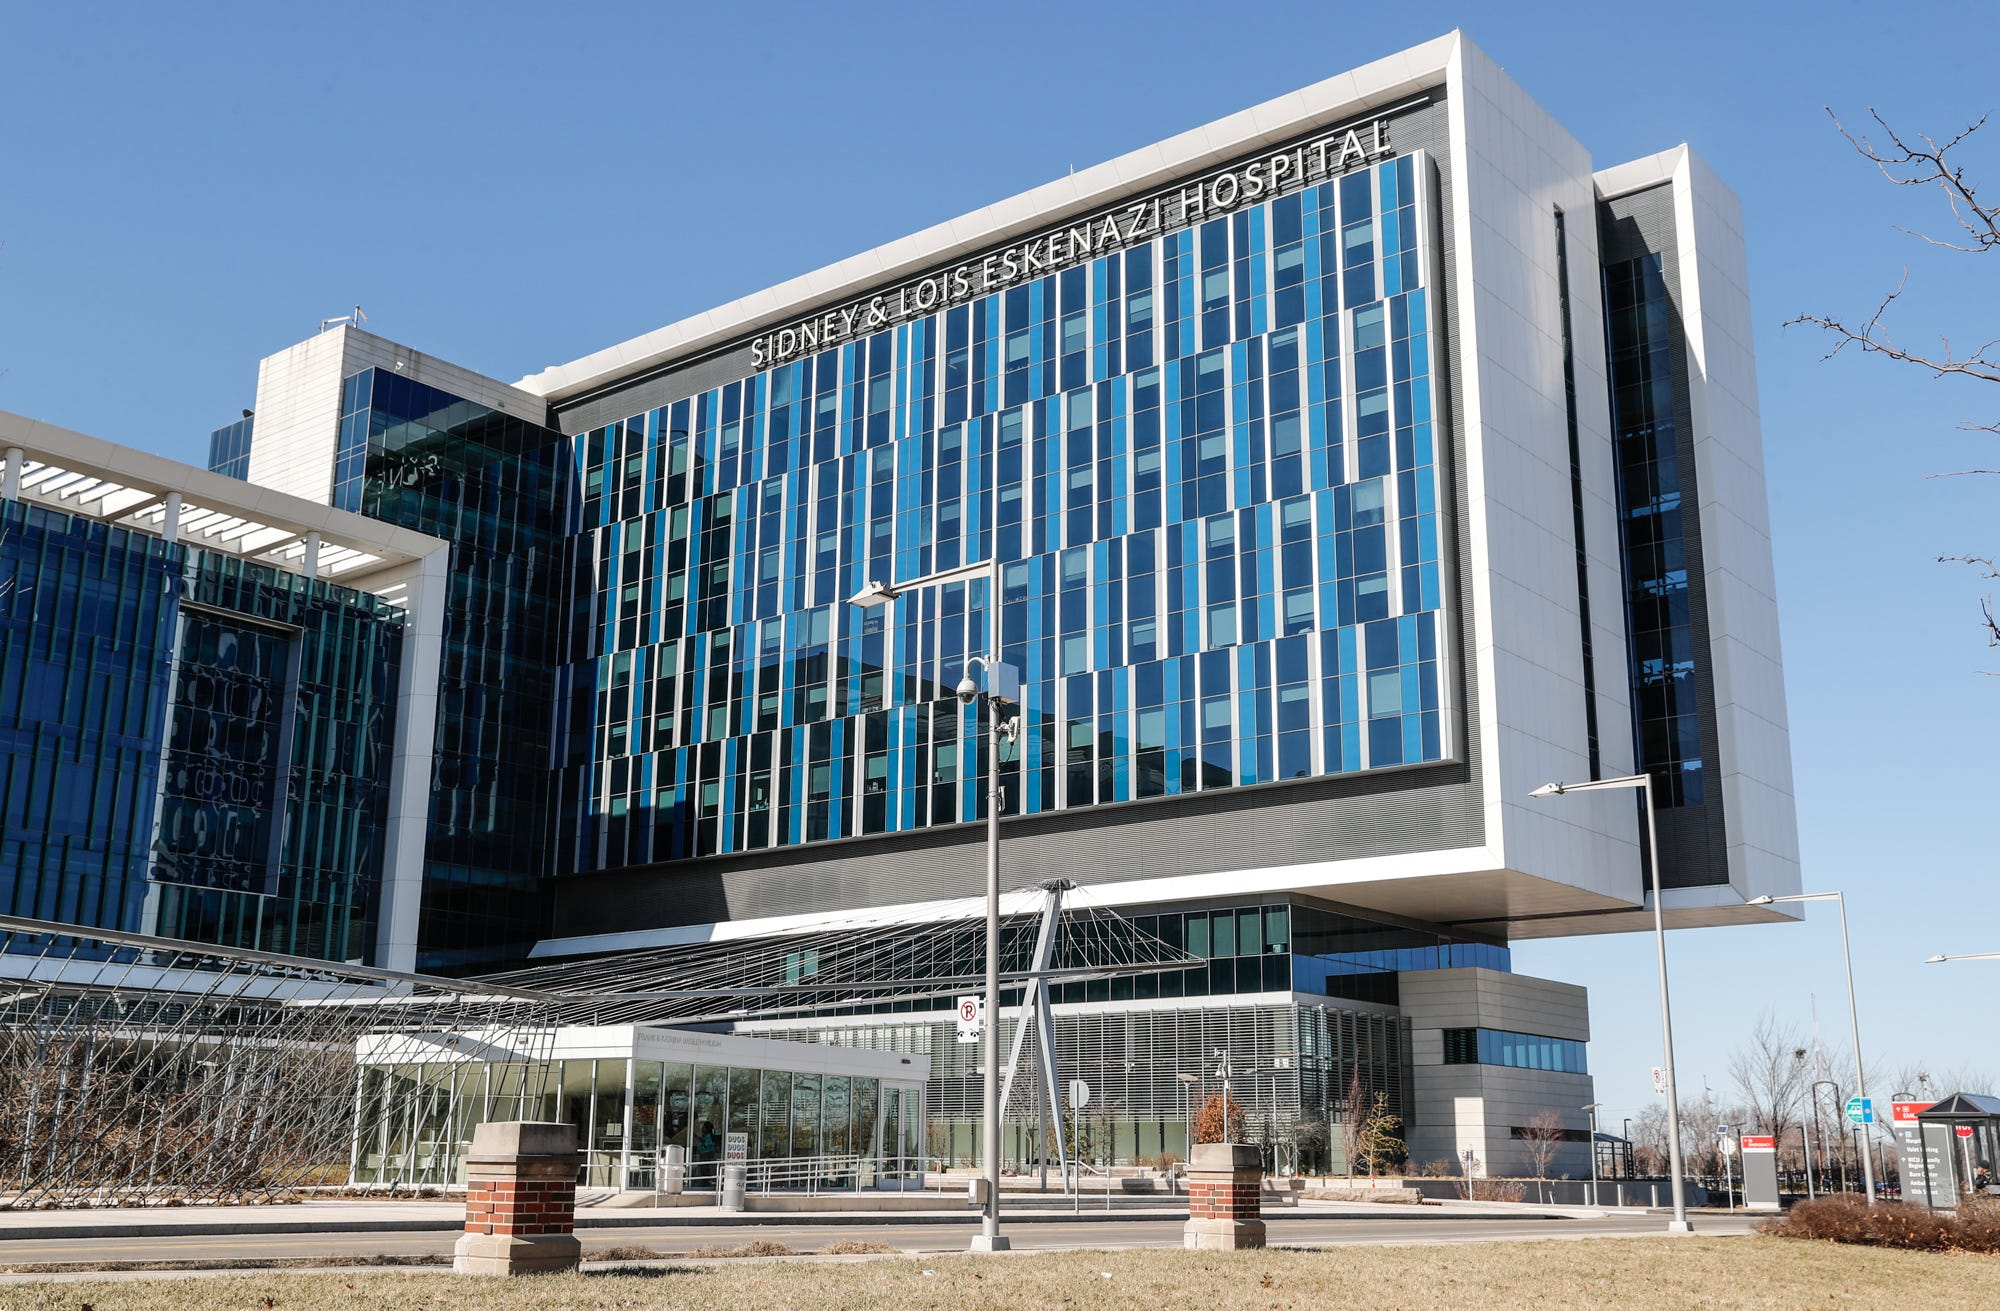 Medicaid funds diverted from nursing homes owned by Health & Hospital Corp. of Marion County are helping pay for the $754 million Sidney & Lois Eskenazi Hospital in Indianapolis.